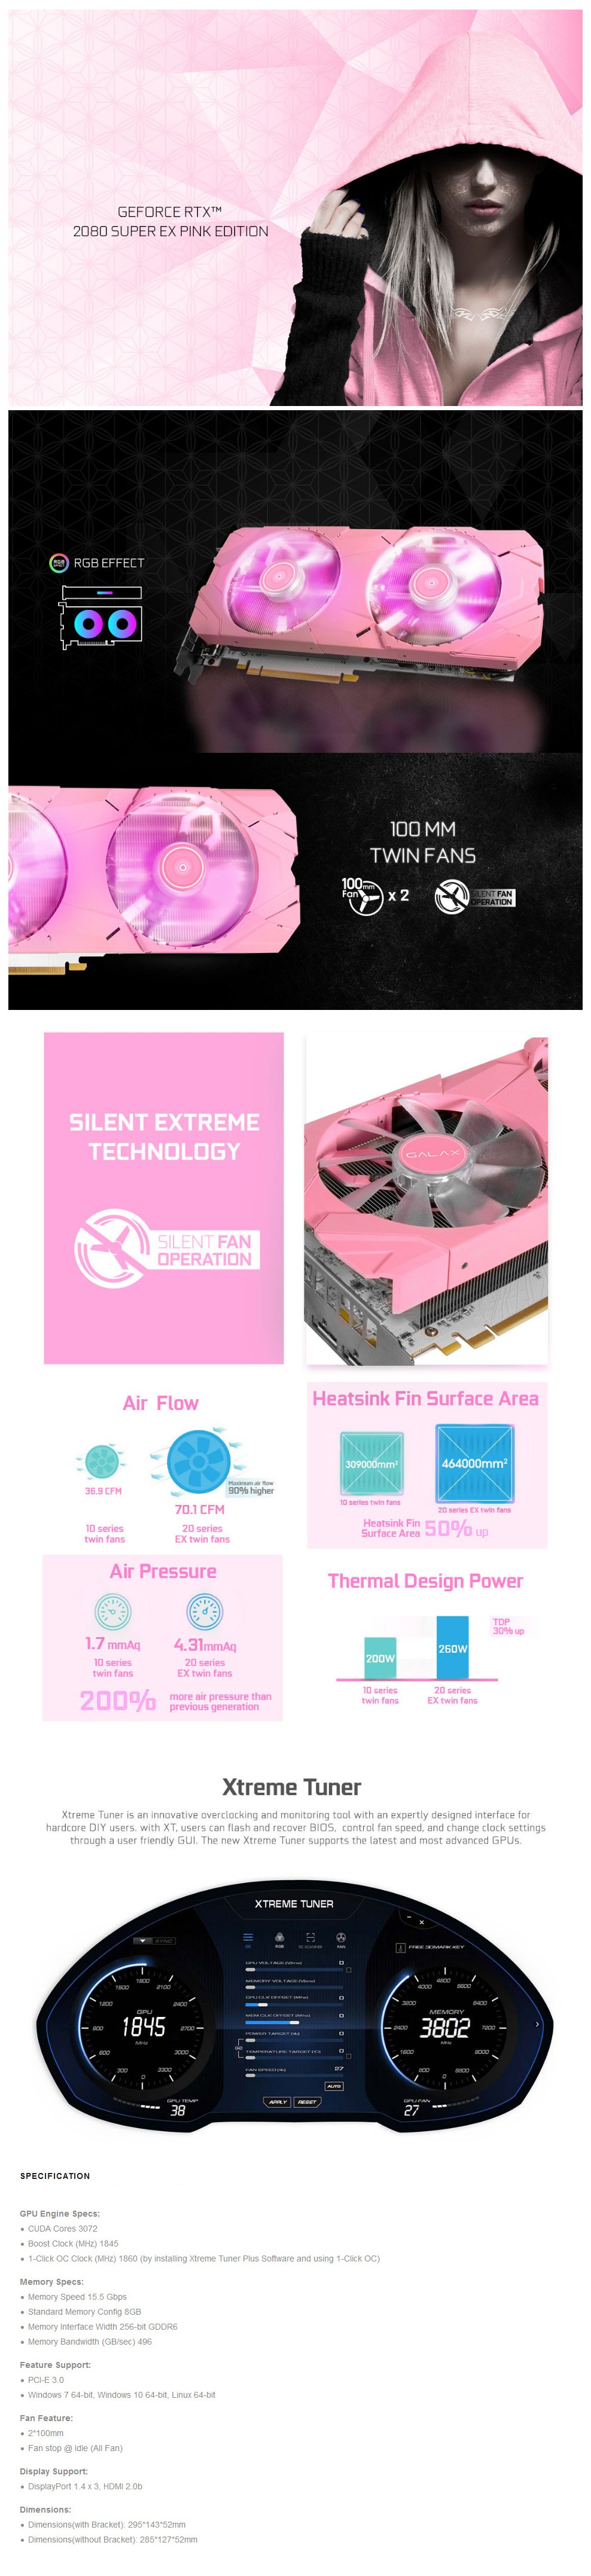 GALAX GeForce RTX 2080 SUPER EX 1-Click OC 8GB Video Card - Pink Edition - Overview 1